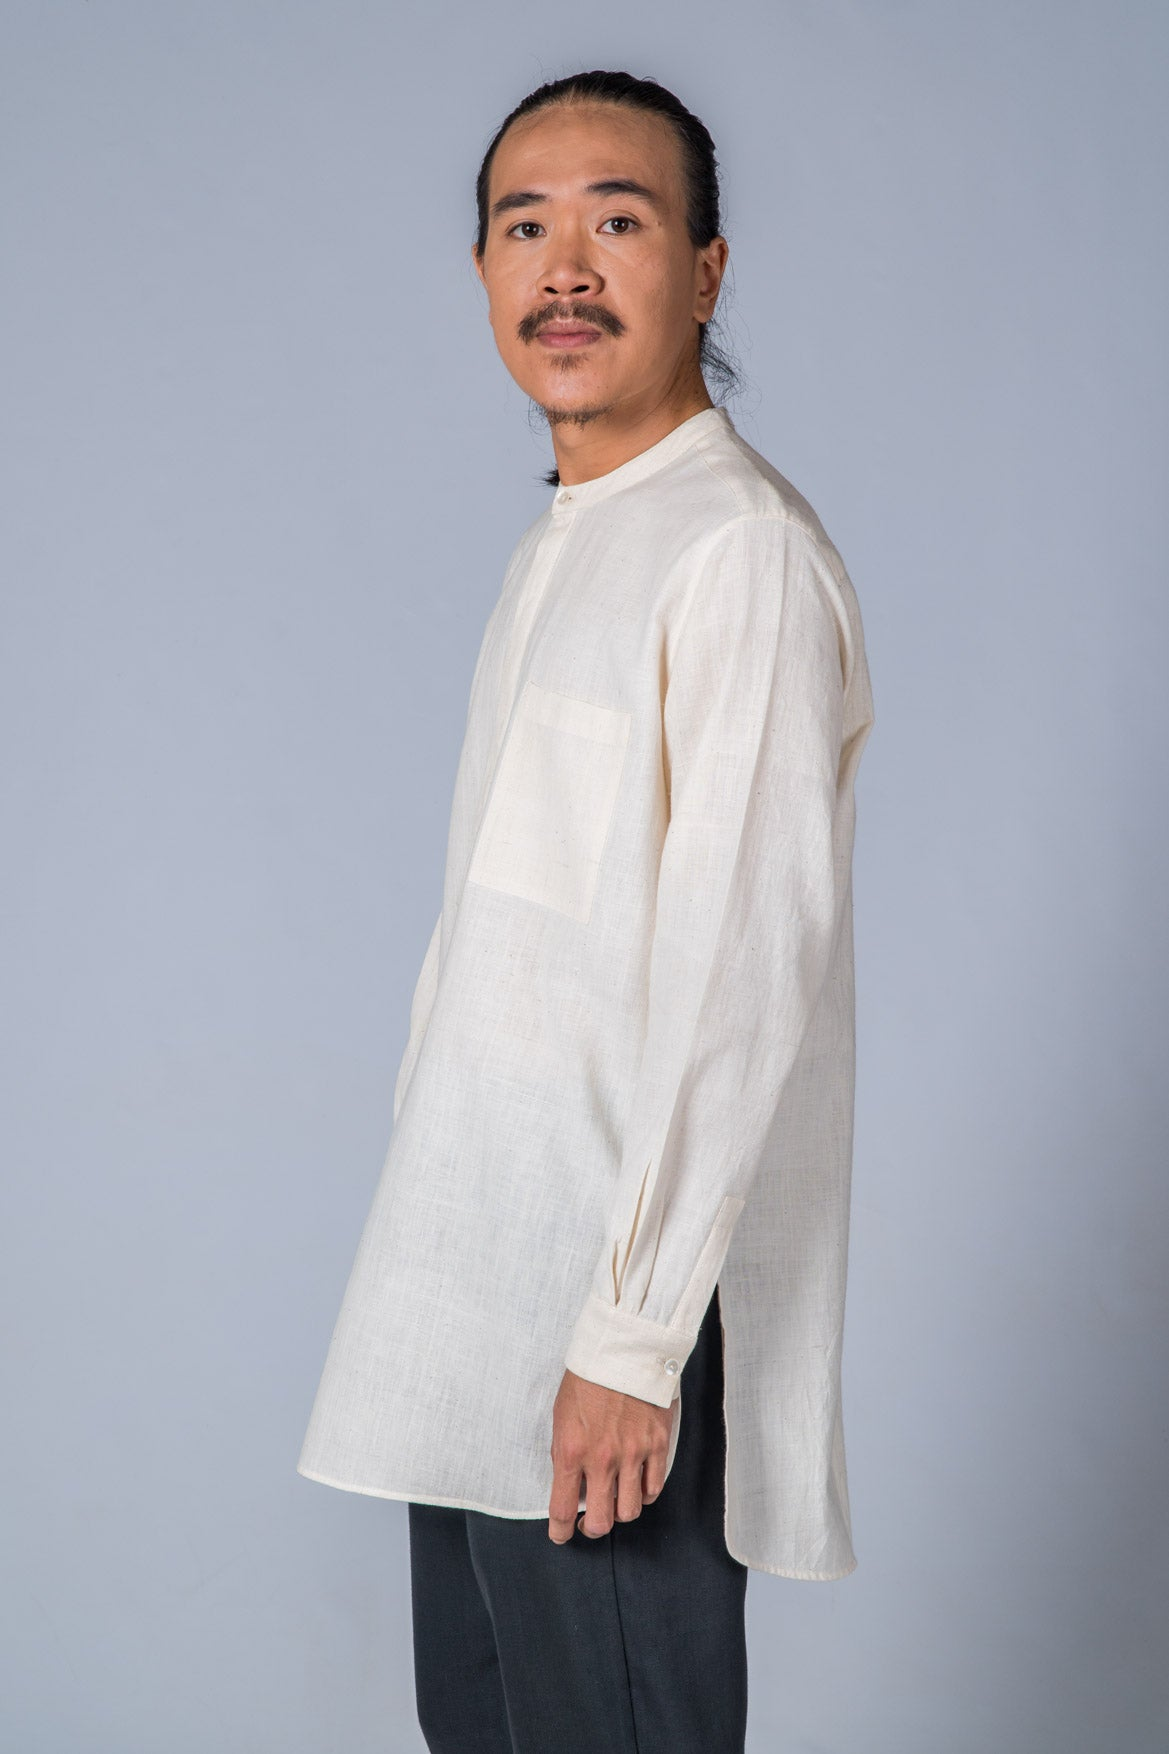 Off-White Handwoven Kurta - ARISTA - Upasana Design Studio